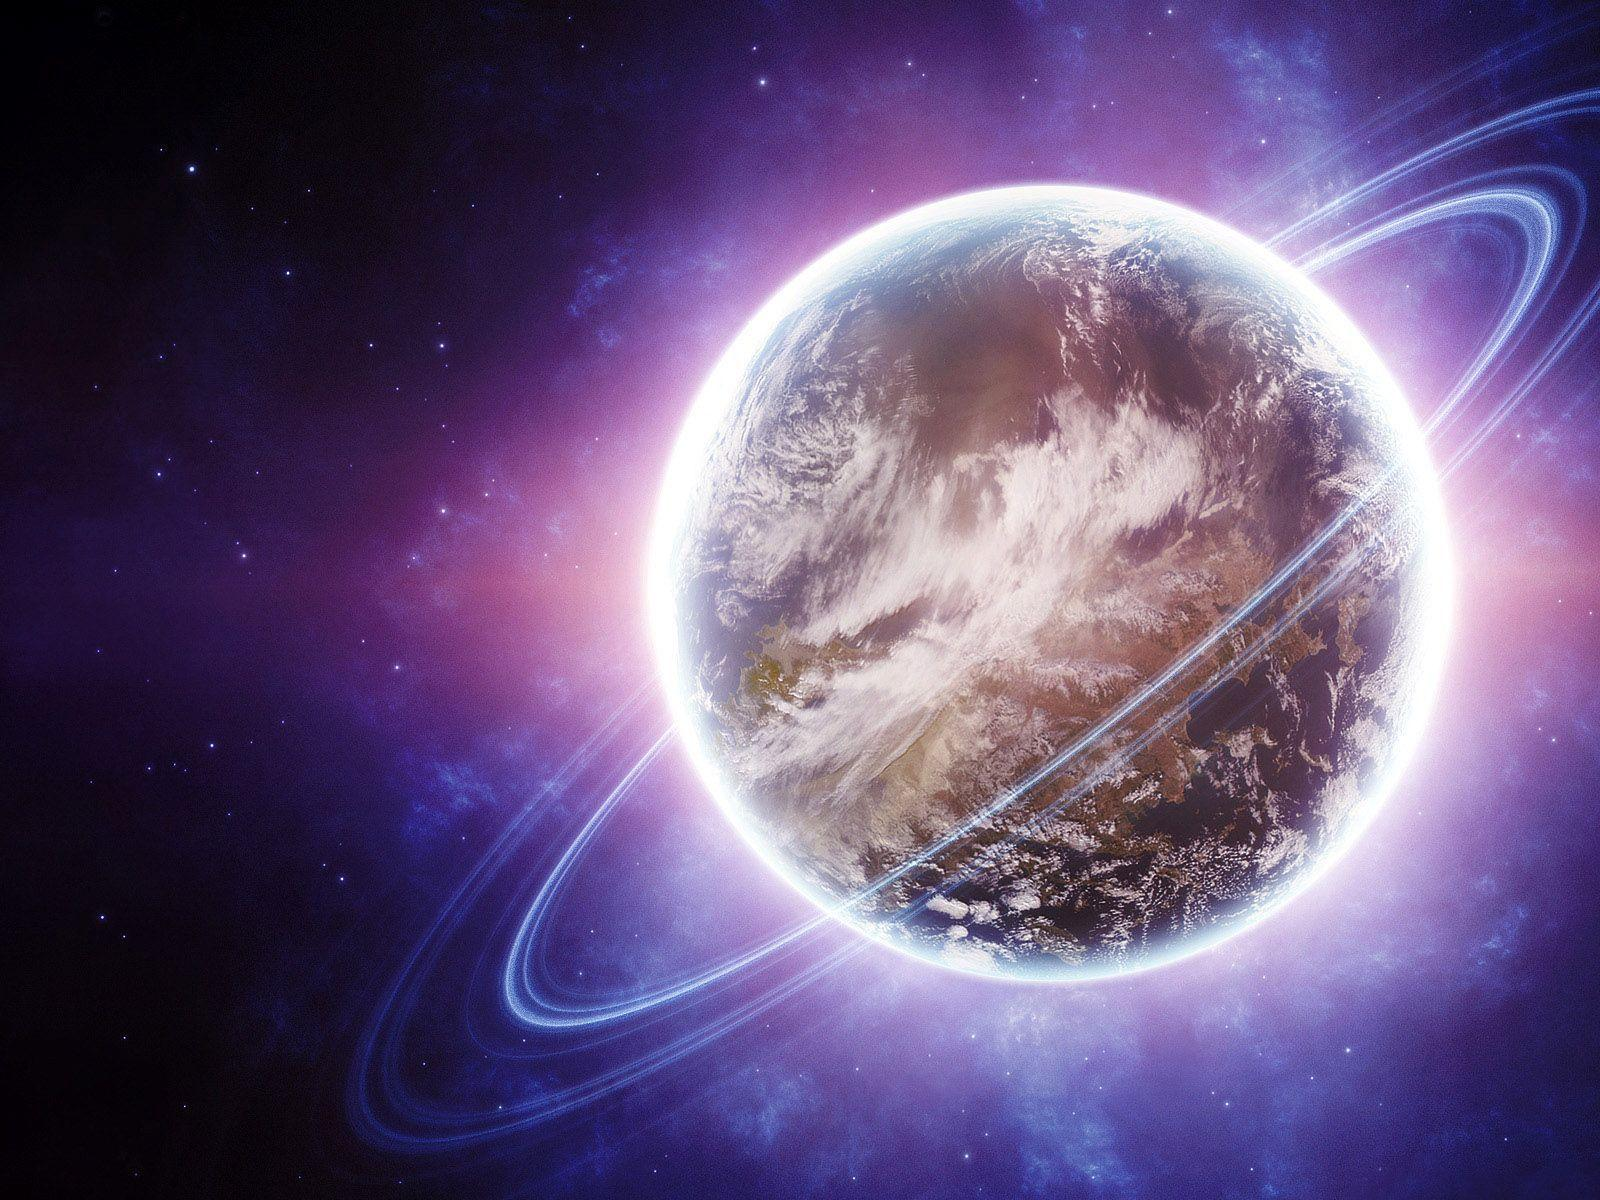 Fantasy Planet Wallpapers 1600x1200